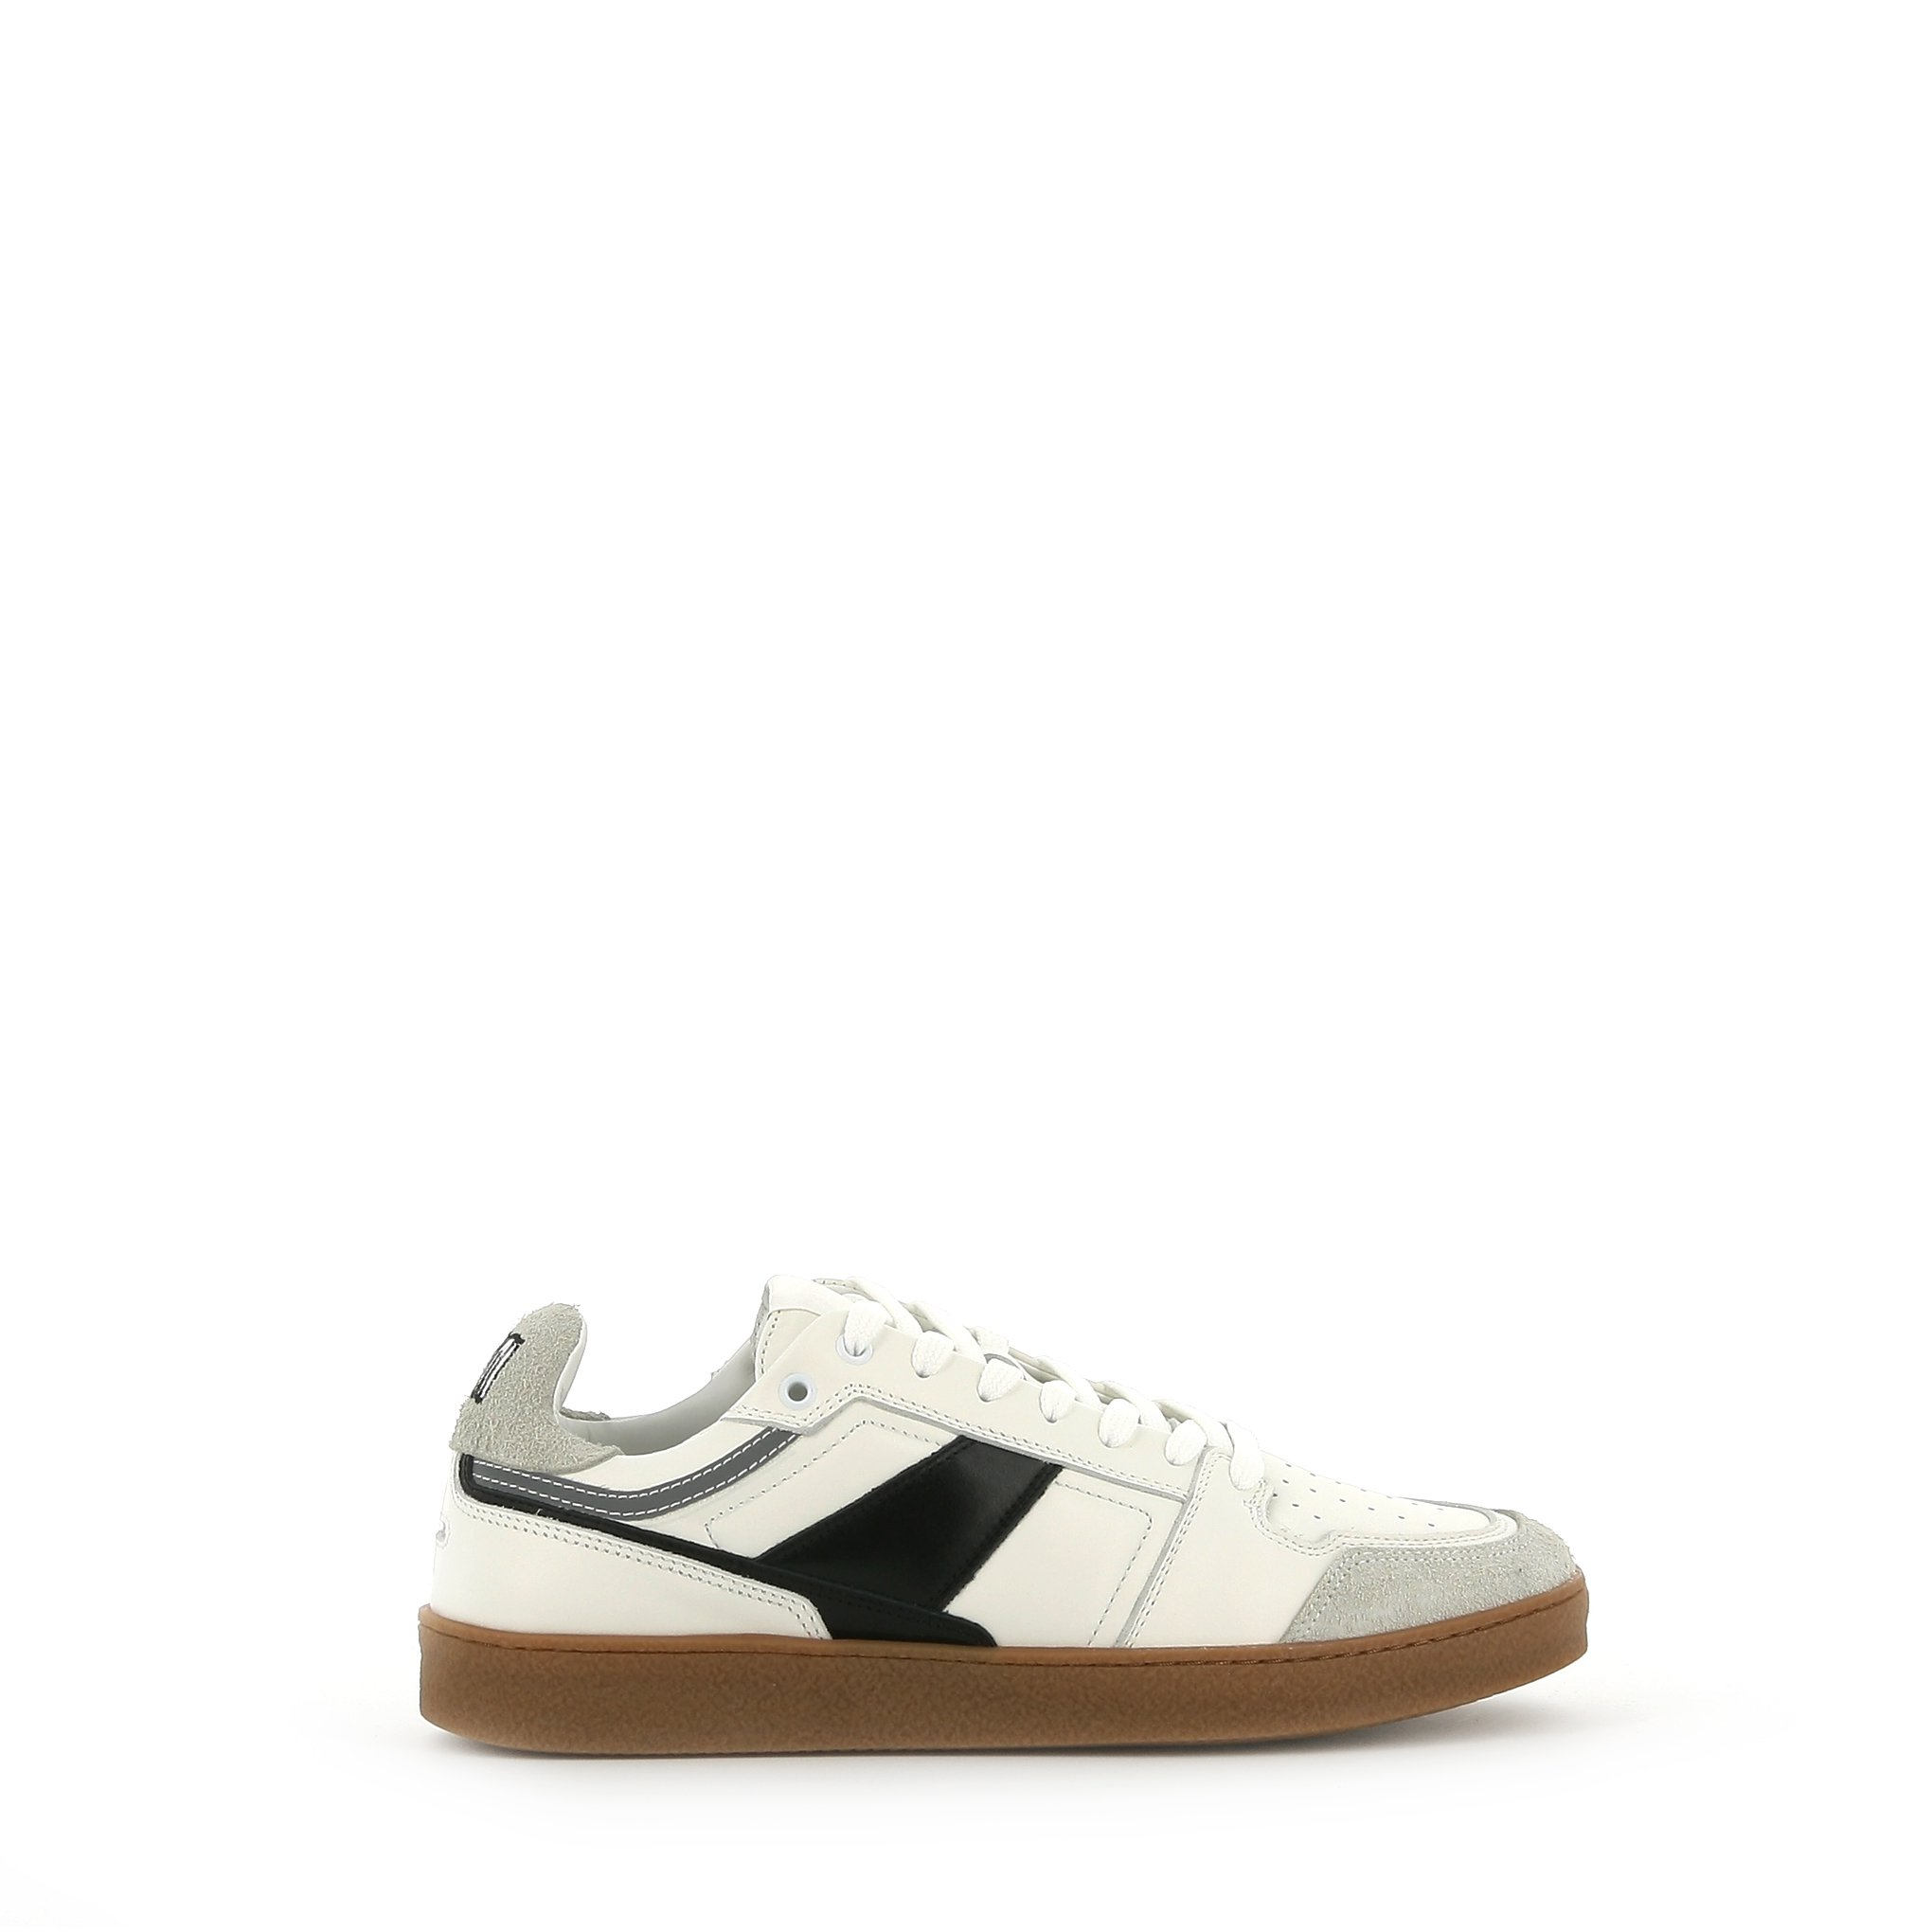 Ami Alexandre Mattiussi Leathers AMI PARIS LEATHER AND SUEDE SNEAKERS